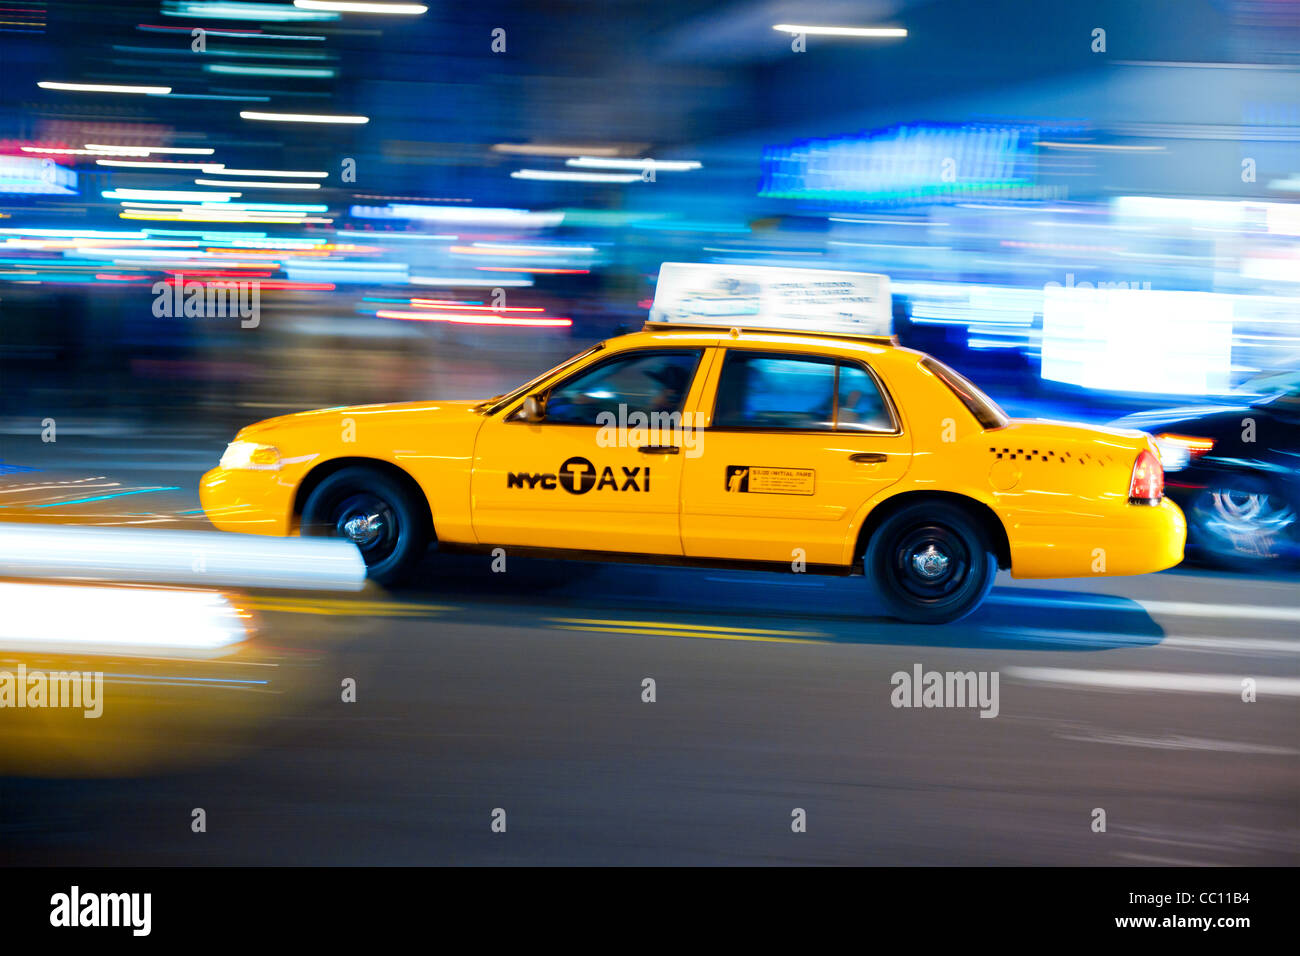 Yellow cab at street. Taxi Cab Manhattan, New York, USA. New York taxi driver goes fast. - Stock Image